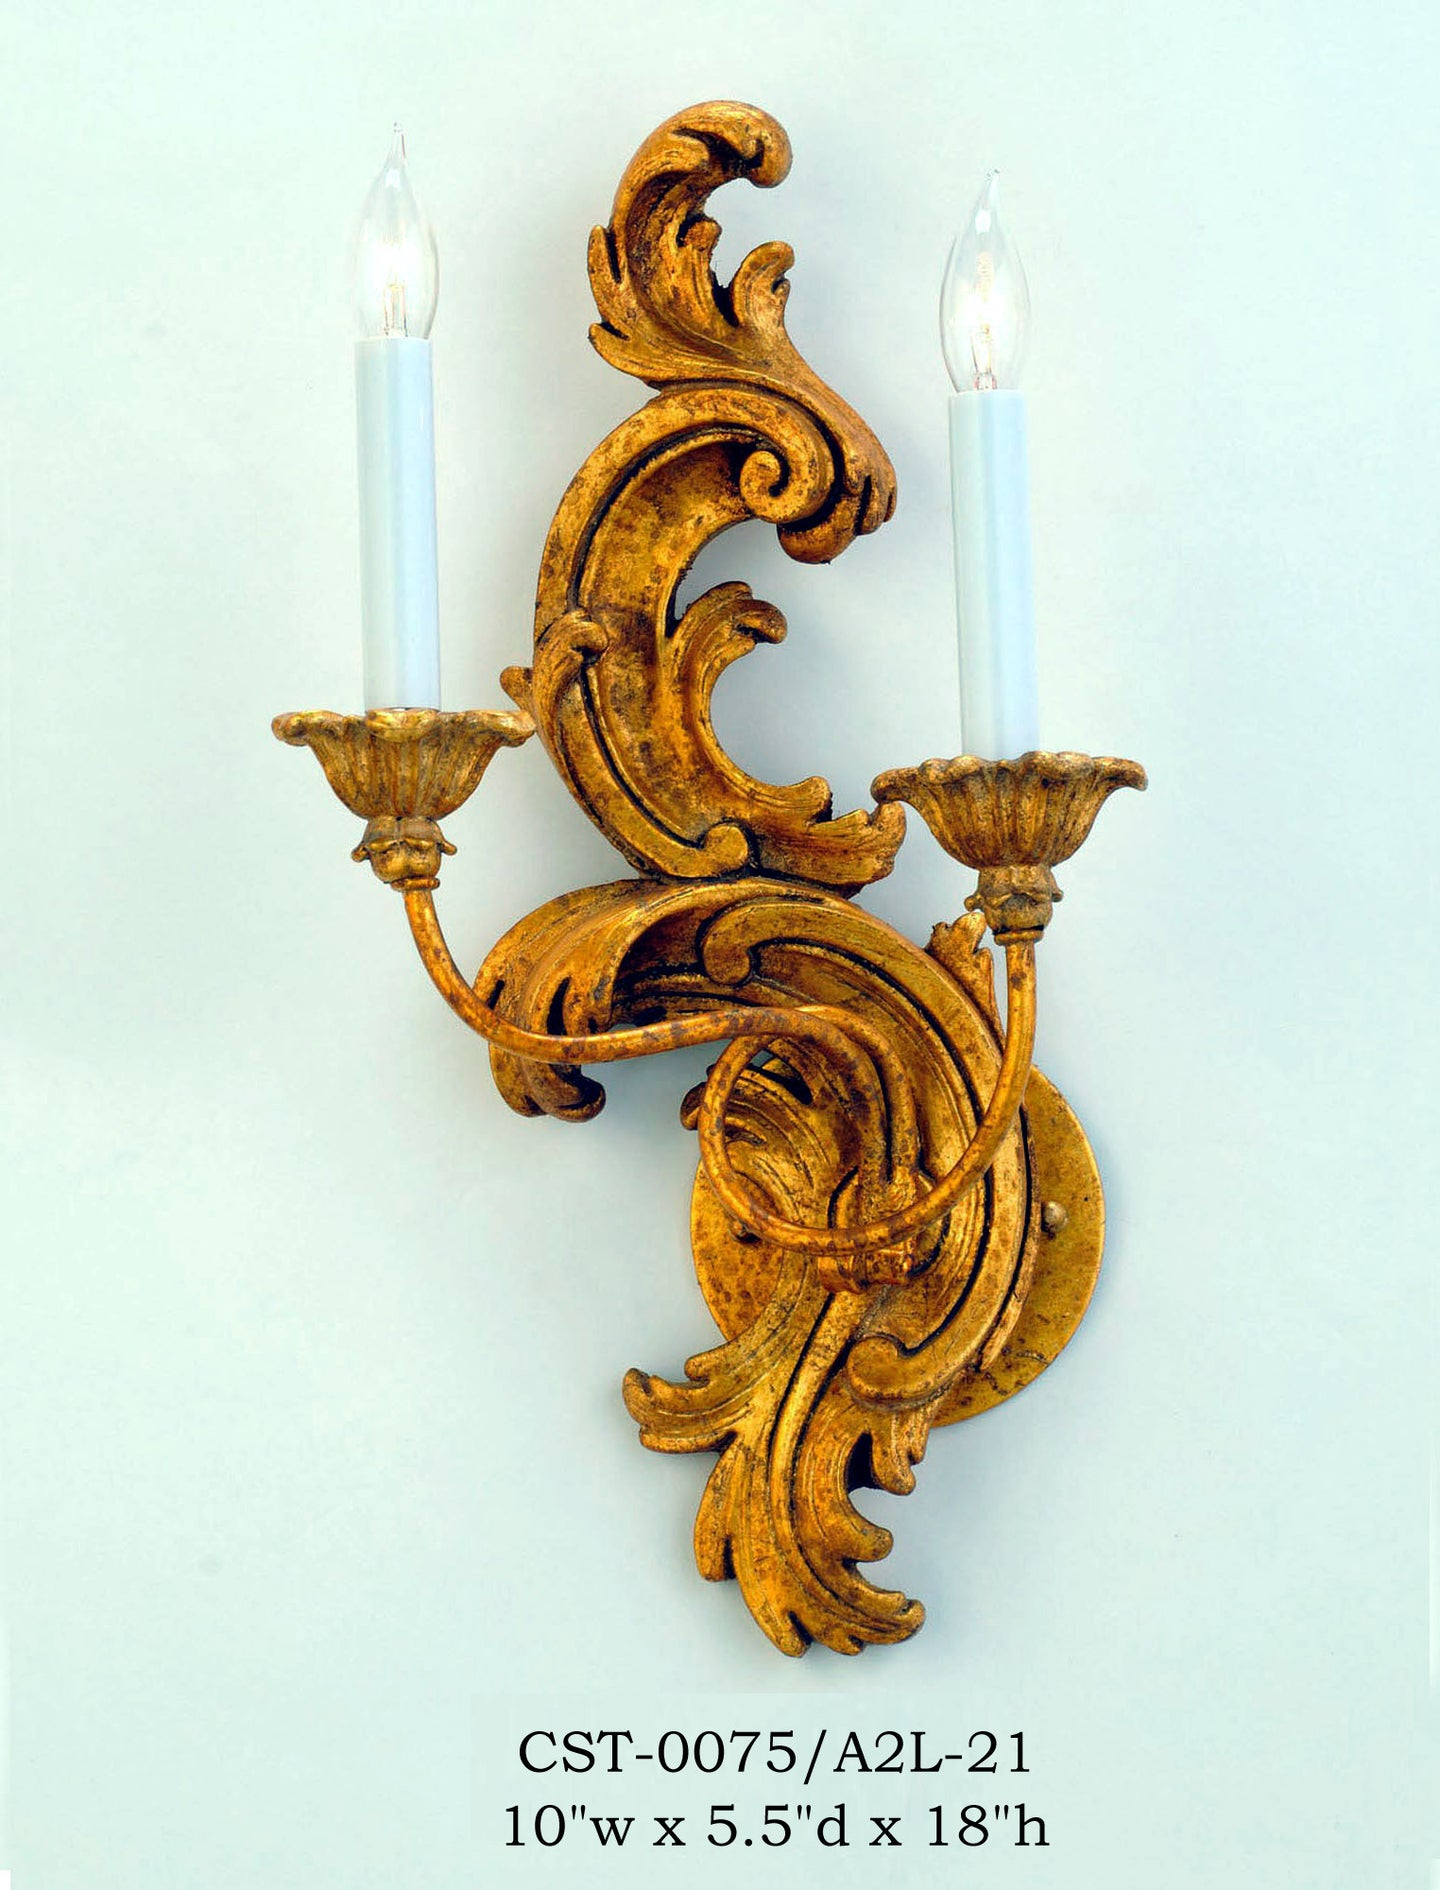 Wood Sconce - CST-0075/A2L-21Sconce - Graham's Lighting Memphis, TN